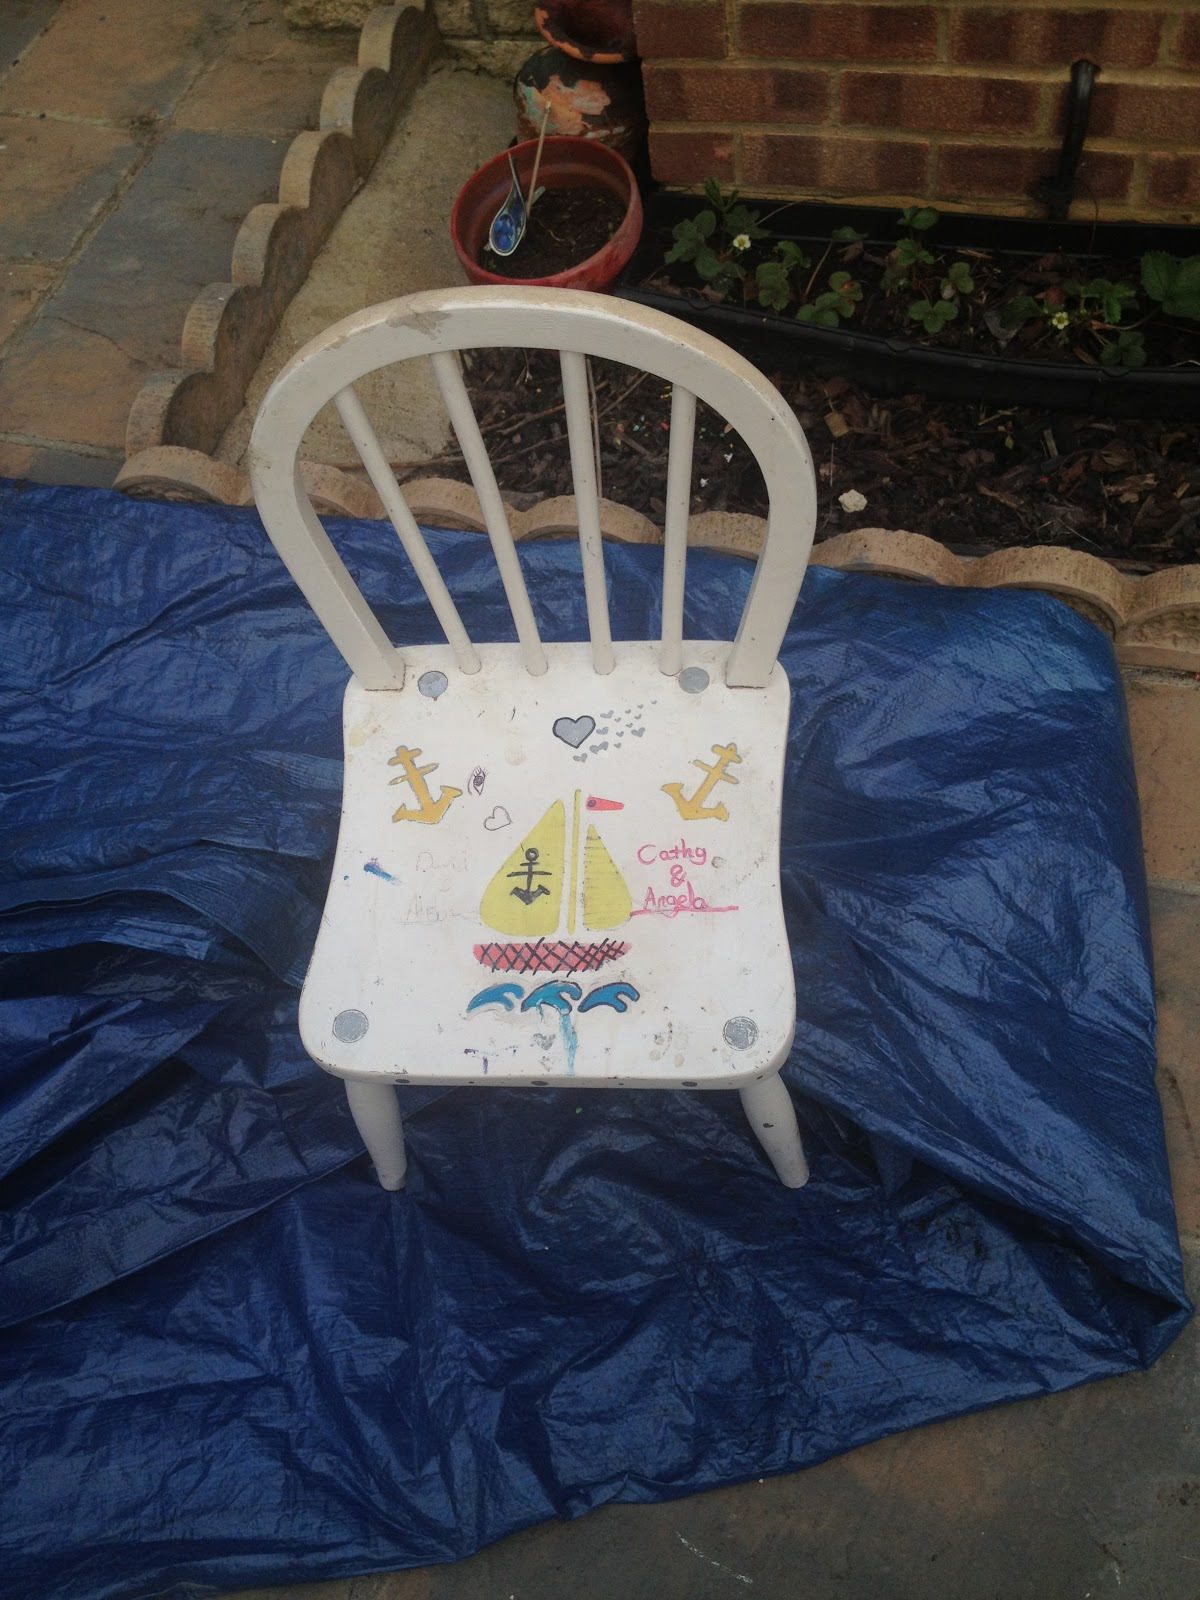 A white chair with doodles on the seat.